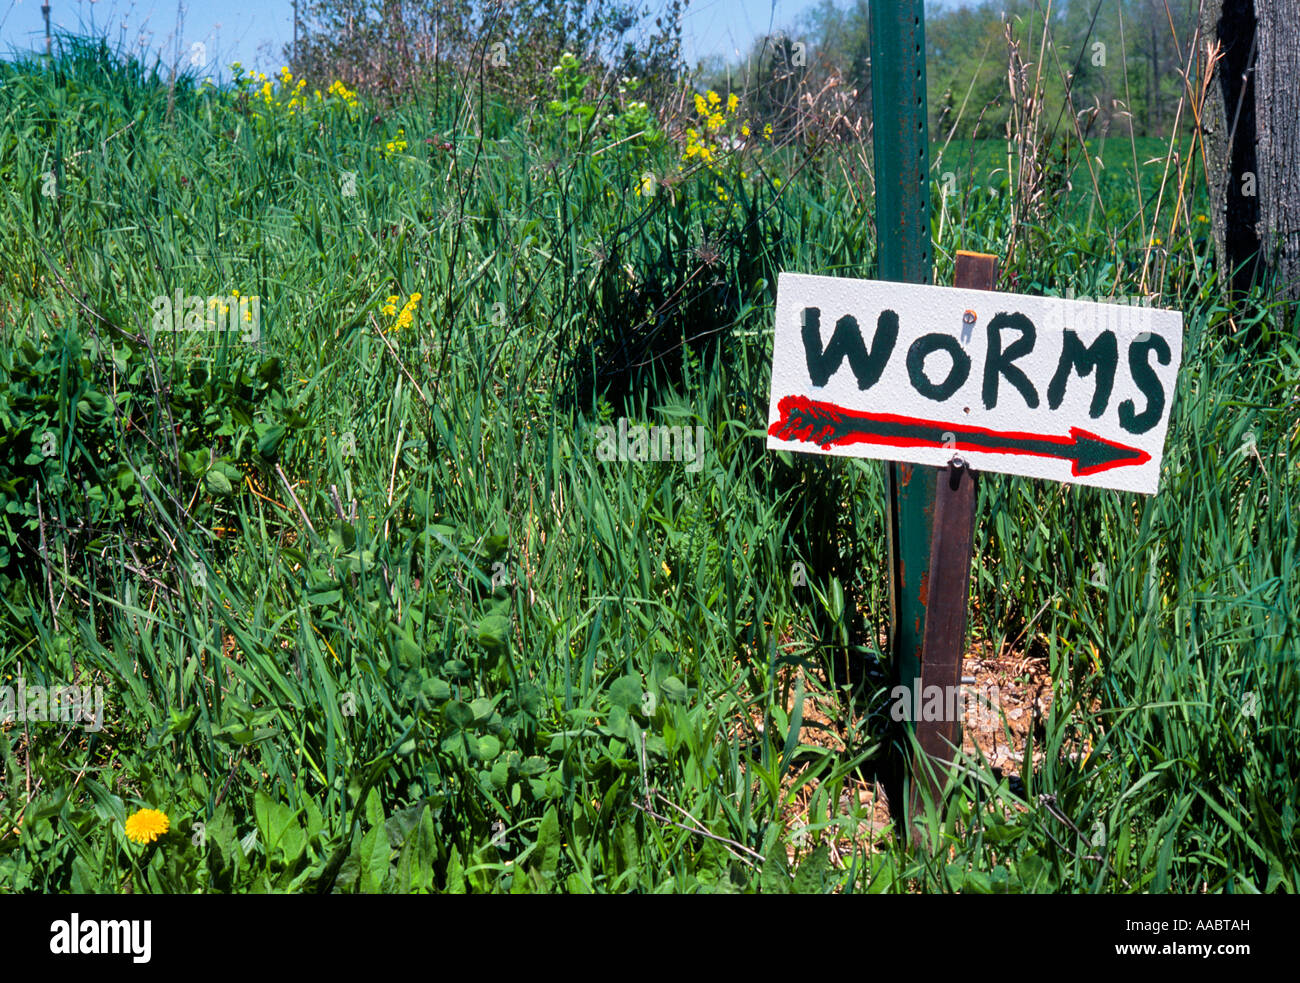 Worms For Sale Sign - Stock Image